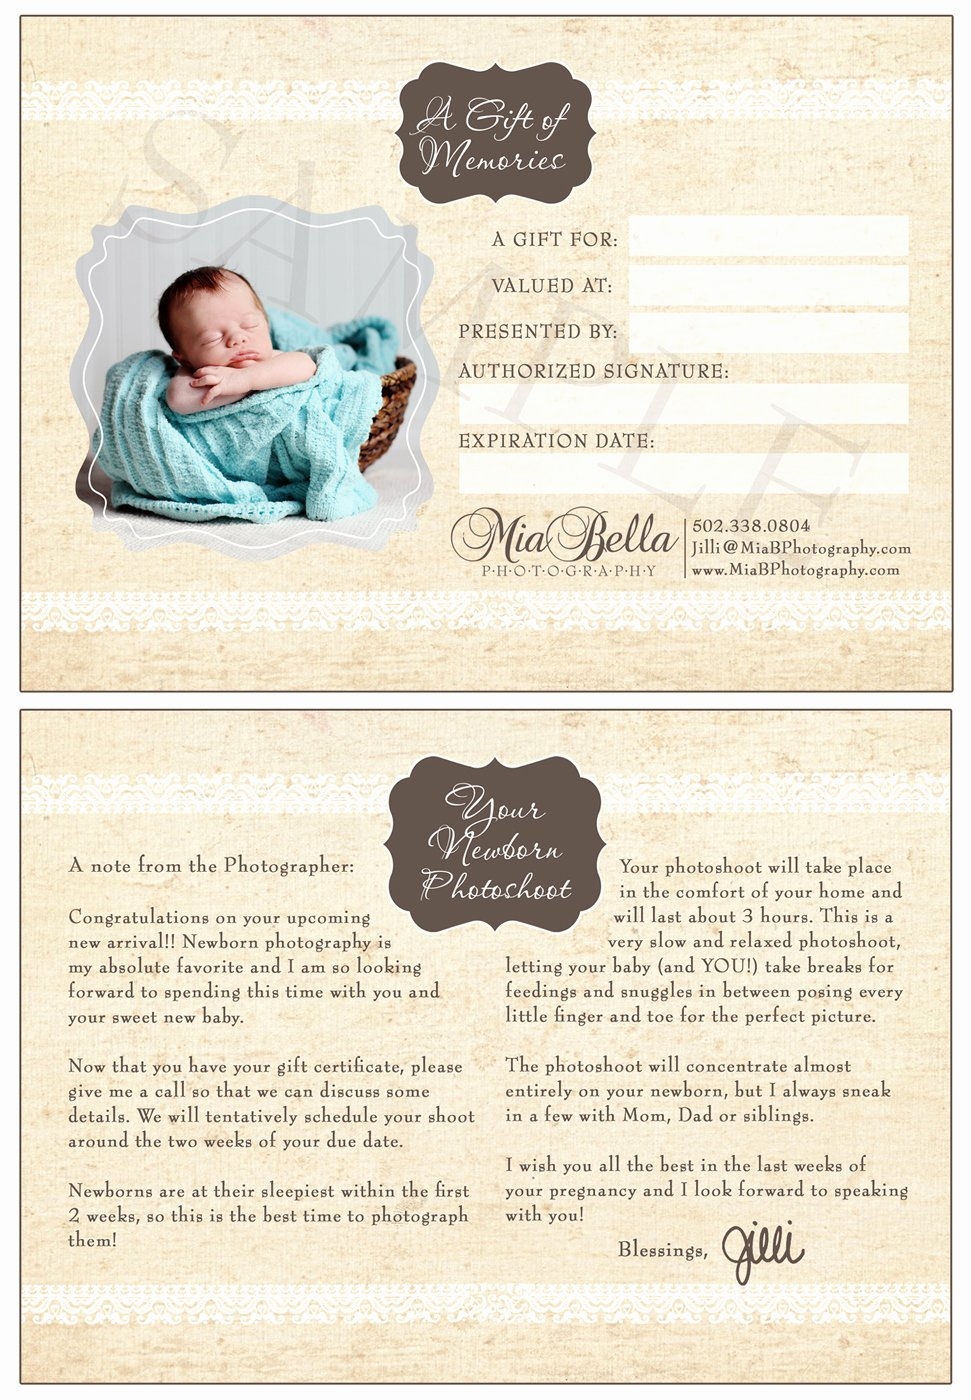 Photo Session Gift Certificate Template Inspirational Mia Bella Photography Newborn Shoot Gift